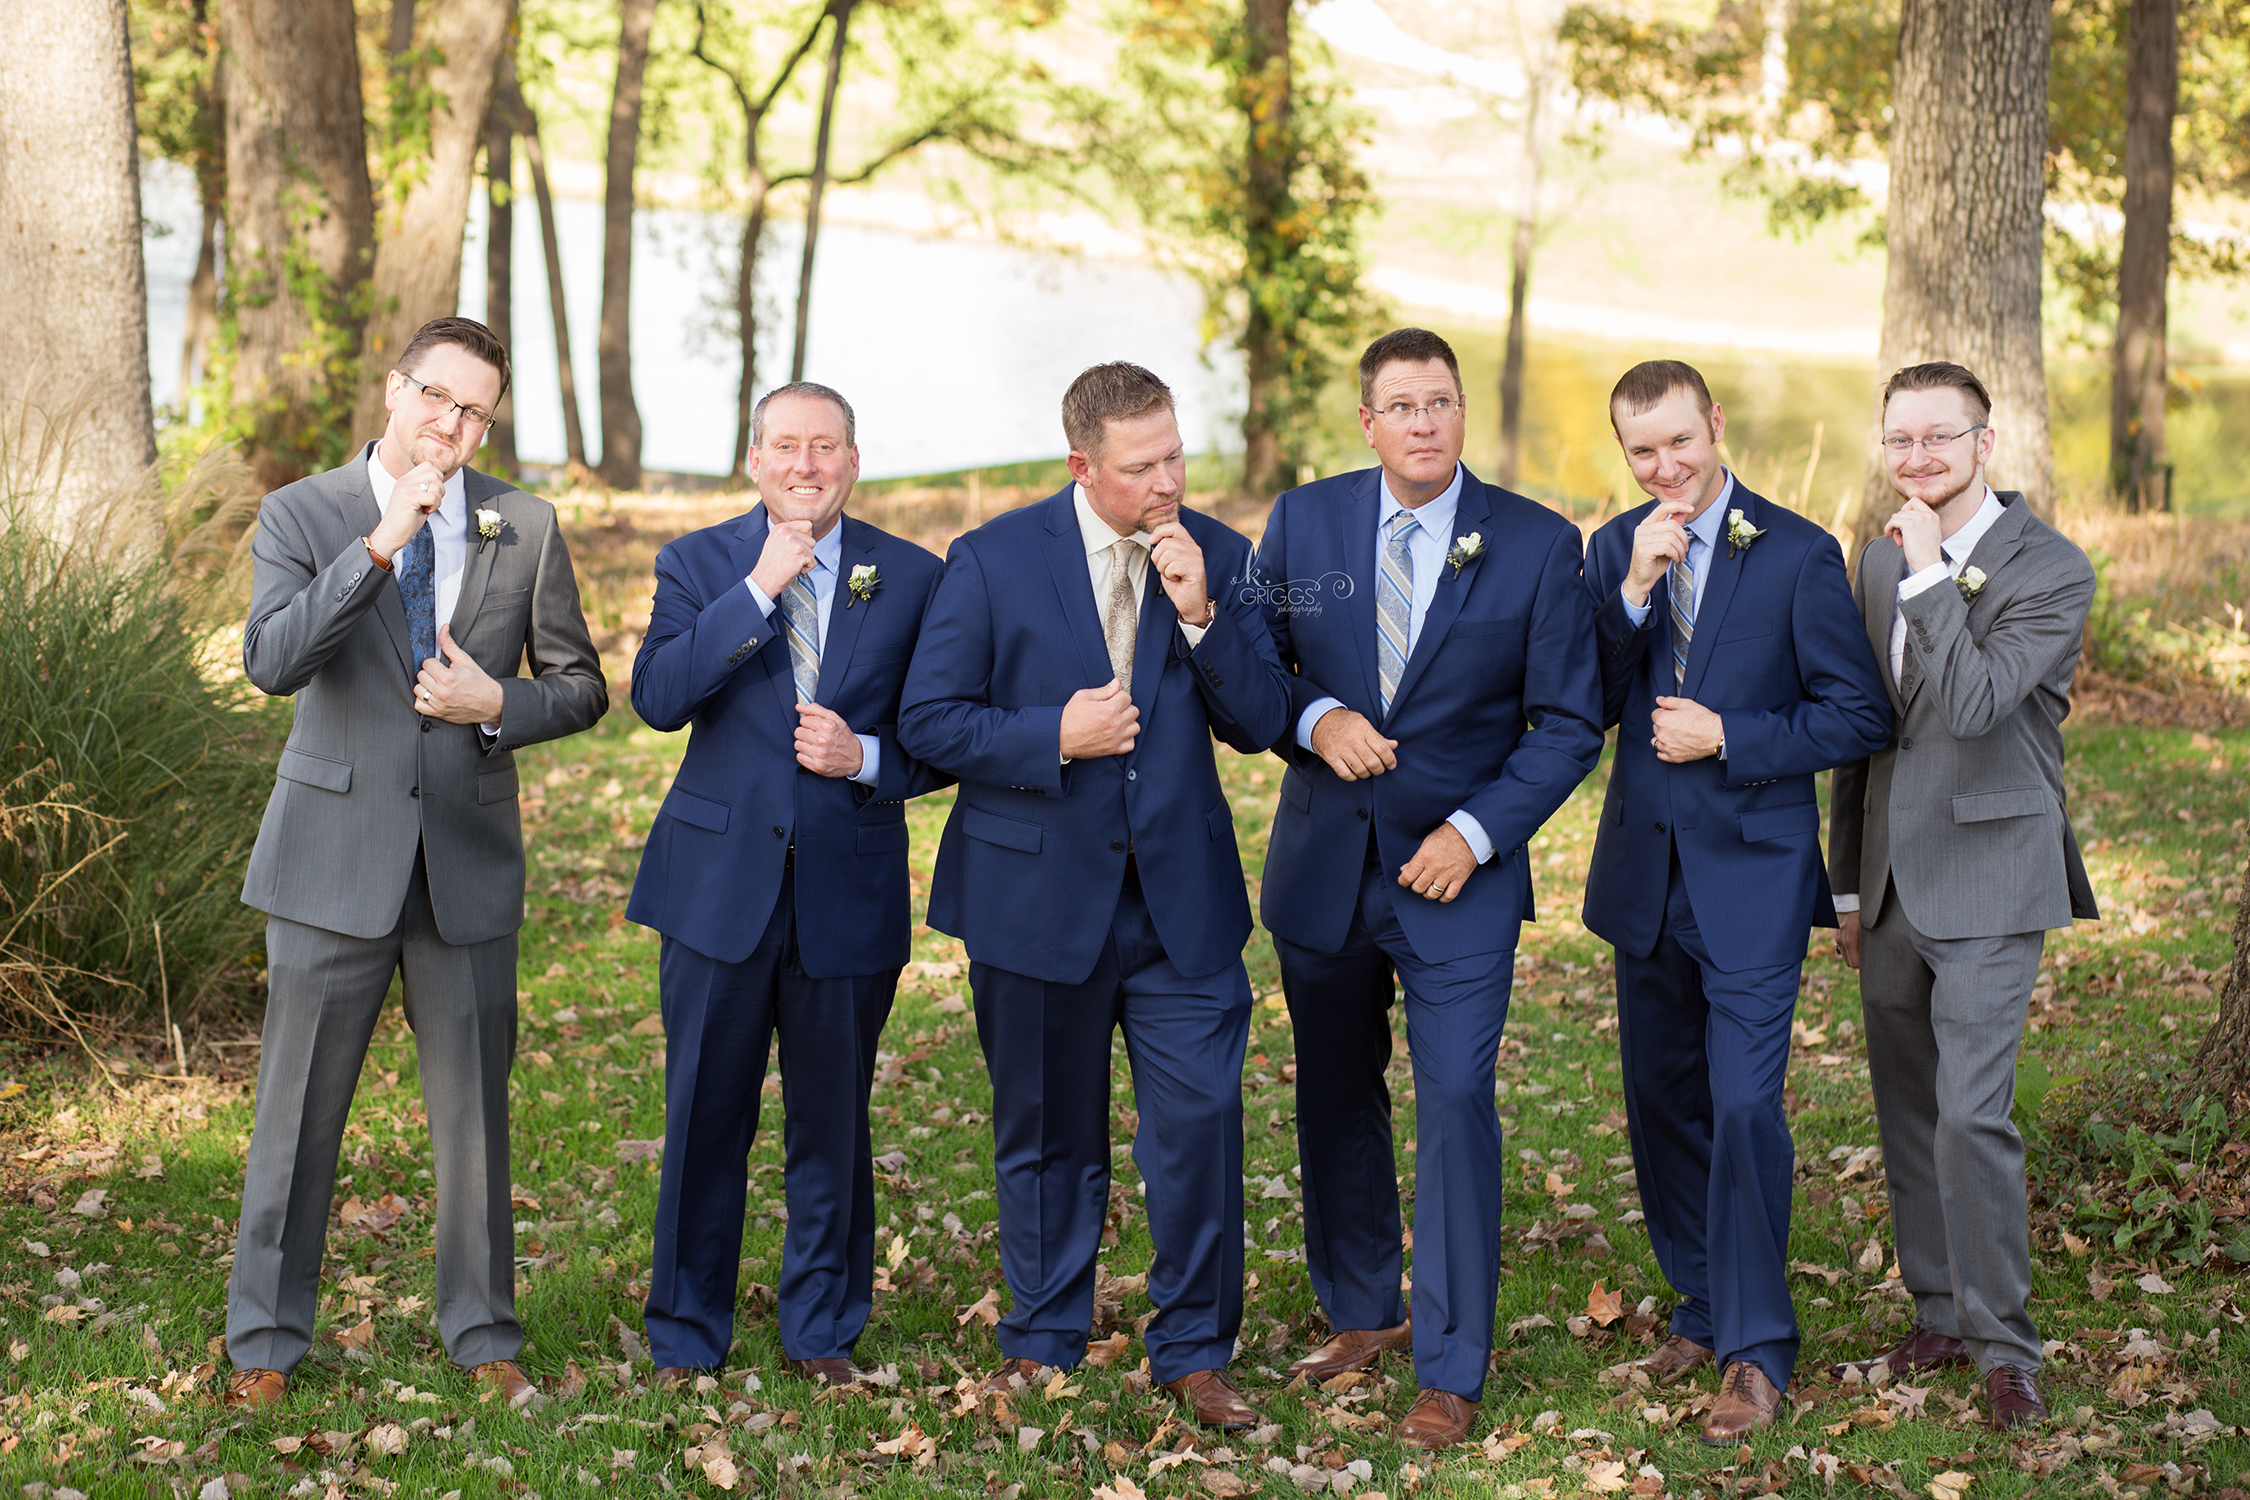 Groom and groomsmen being silly | St. Louis Photographer